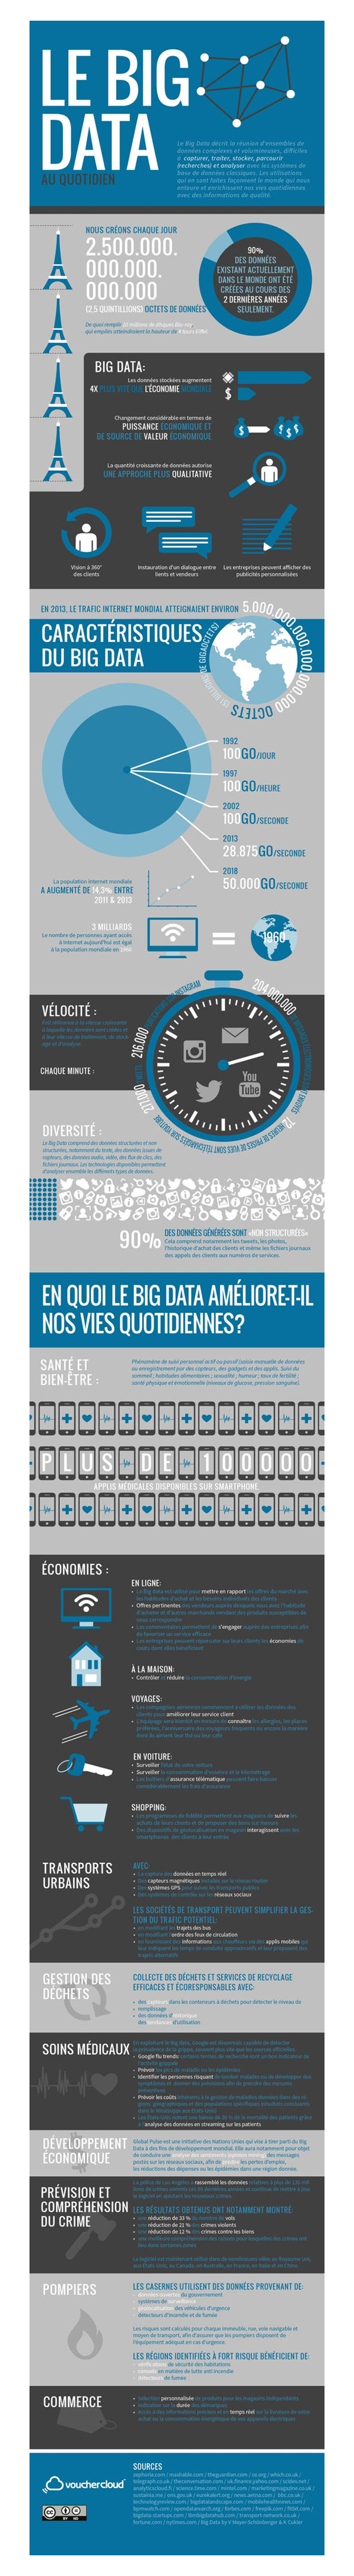 infographie_big_data